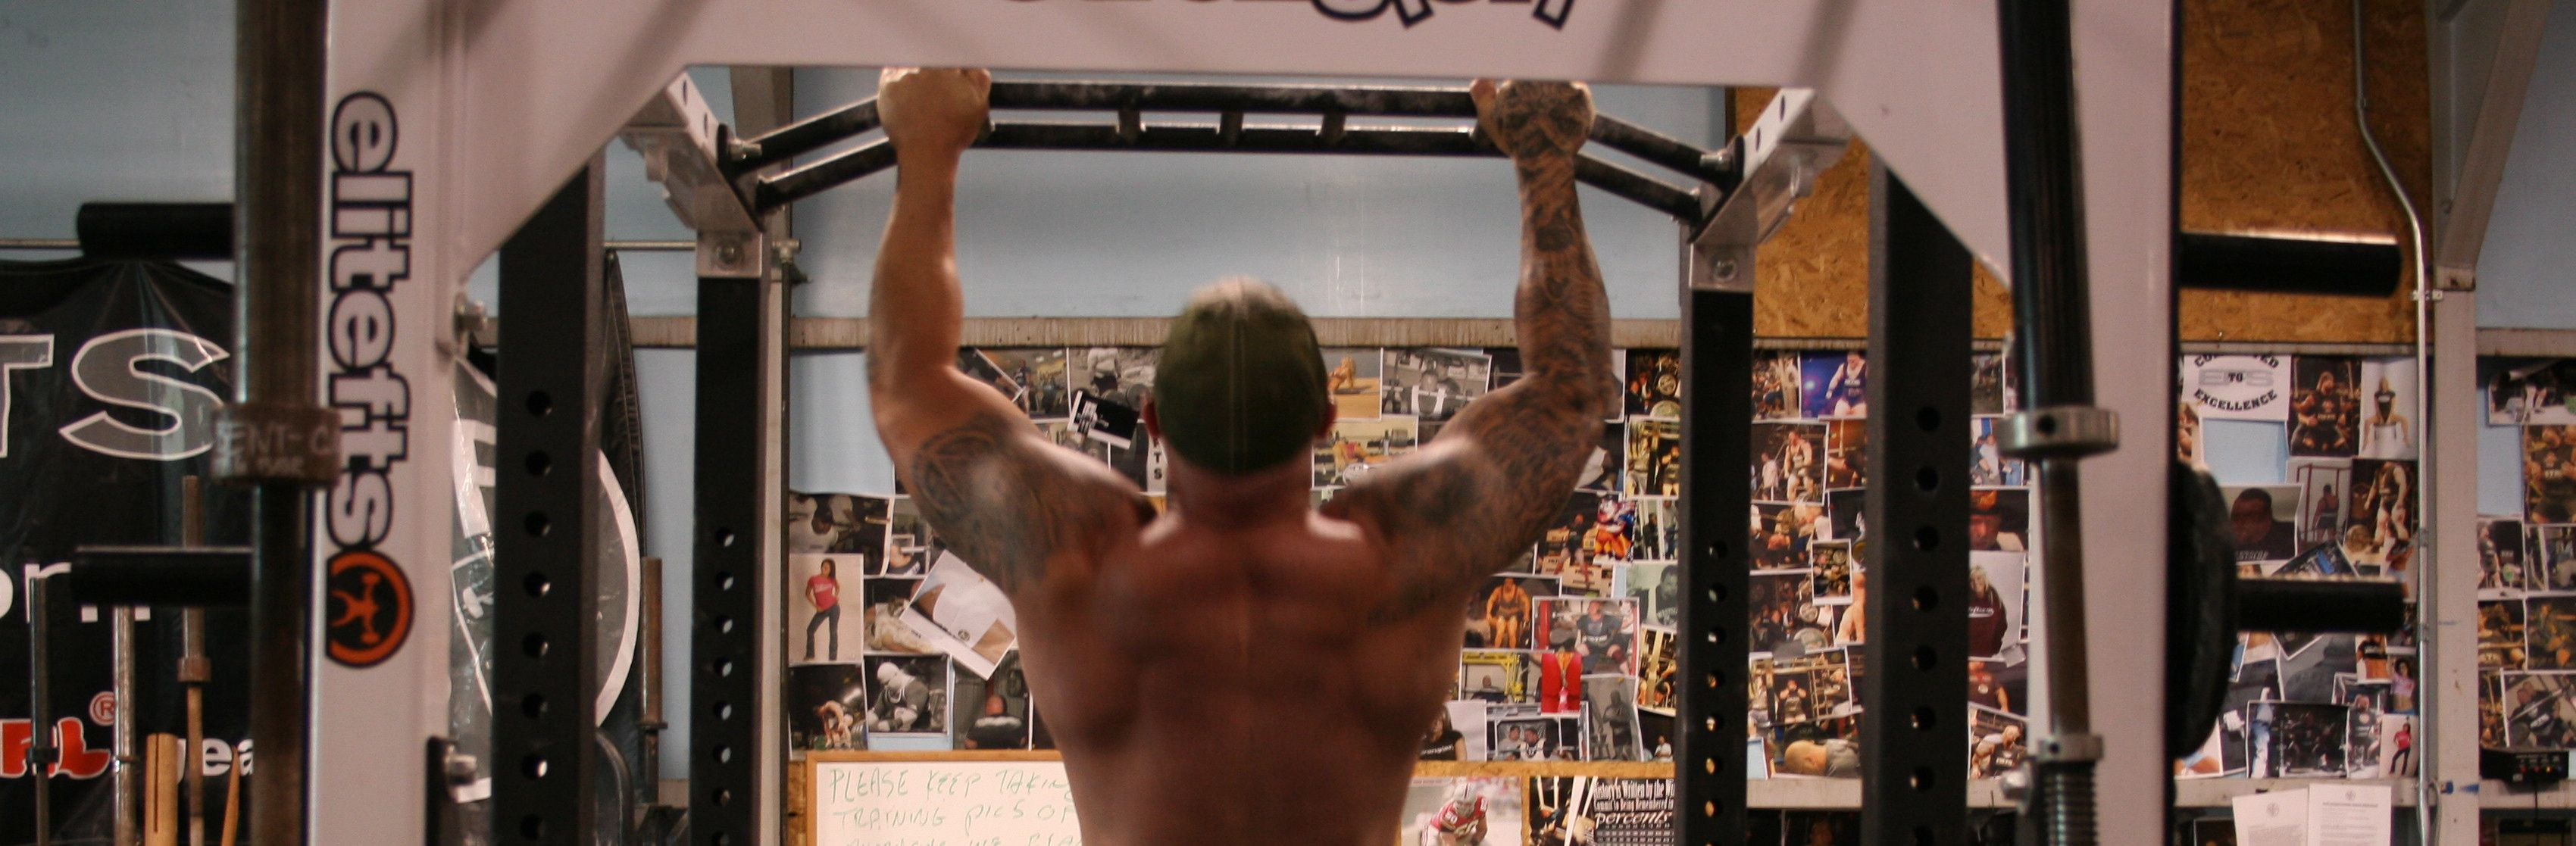 foto How to Do More Pull Ups